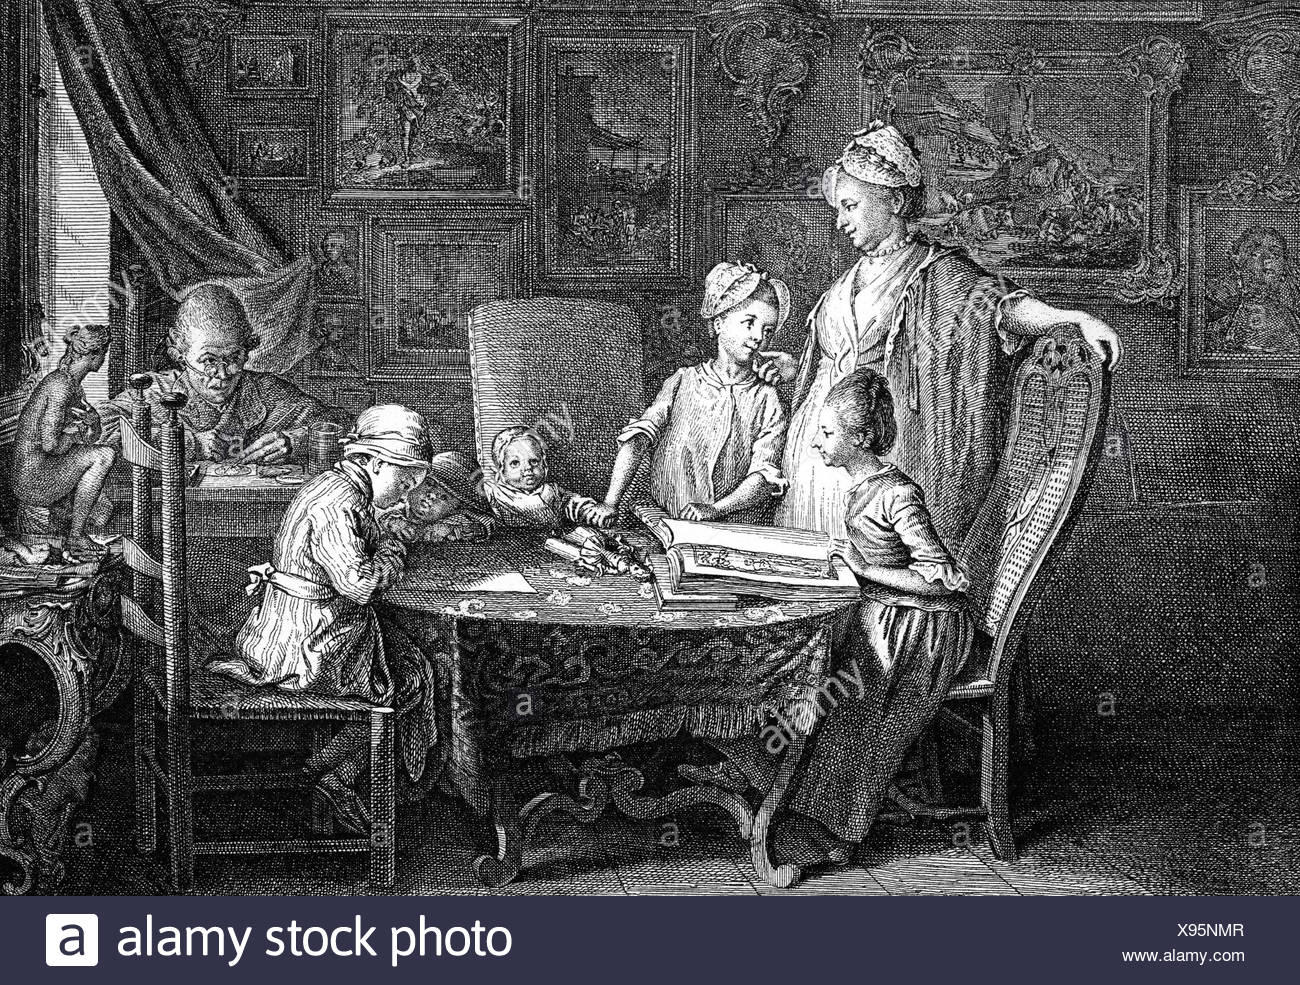 Chodowiecki, Daniel, 16.10.1726 - 7.2.1801, Polish - German painter and printmaker, disturbed by his family, copper engraving 'Das Familienblatt', by himself, 18th century, Artist's Copyright has not to be cleared - Stock Image